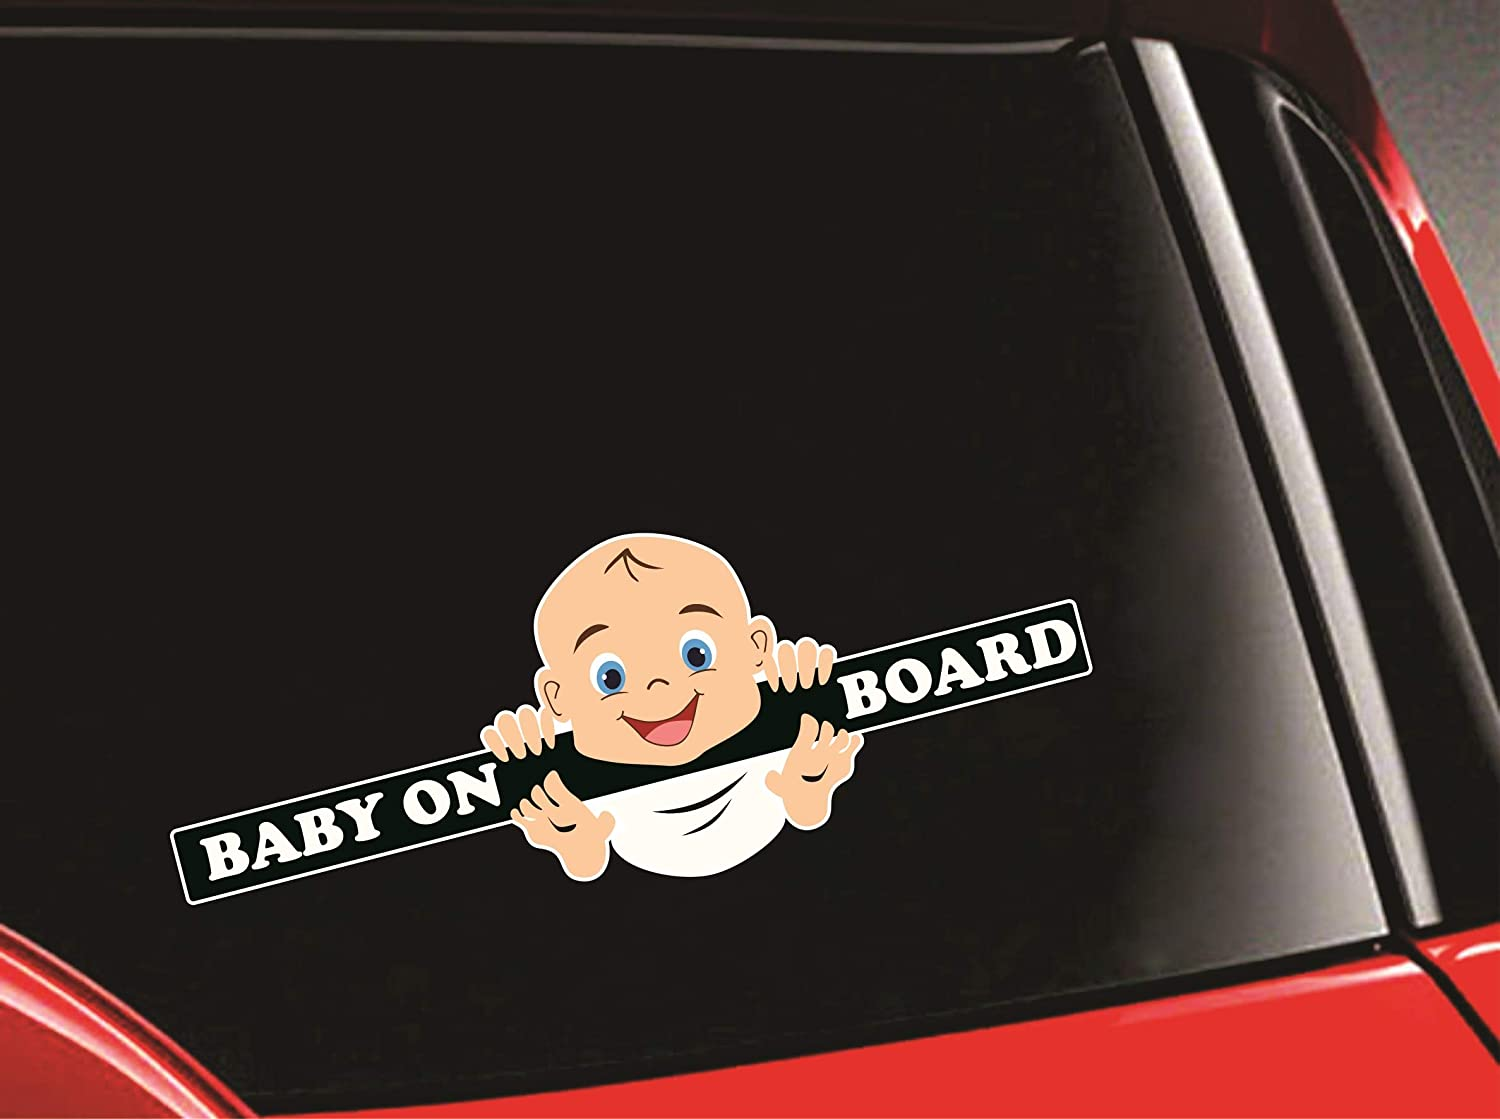 Syga baby on board laughing baby car stickers amazon in toys games